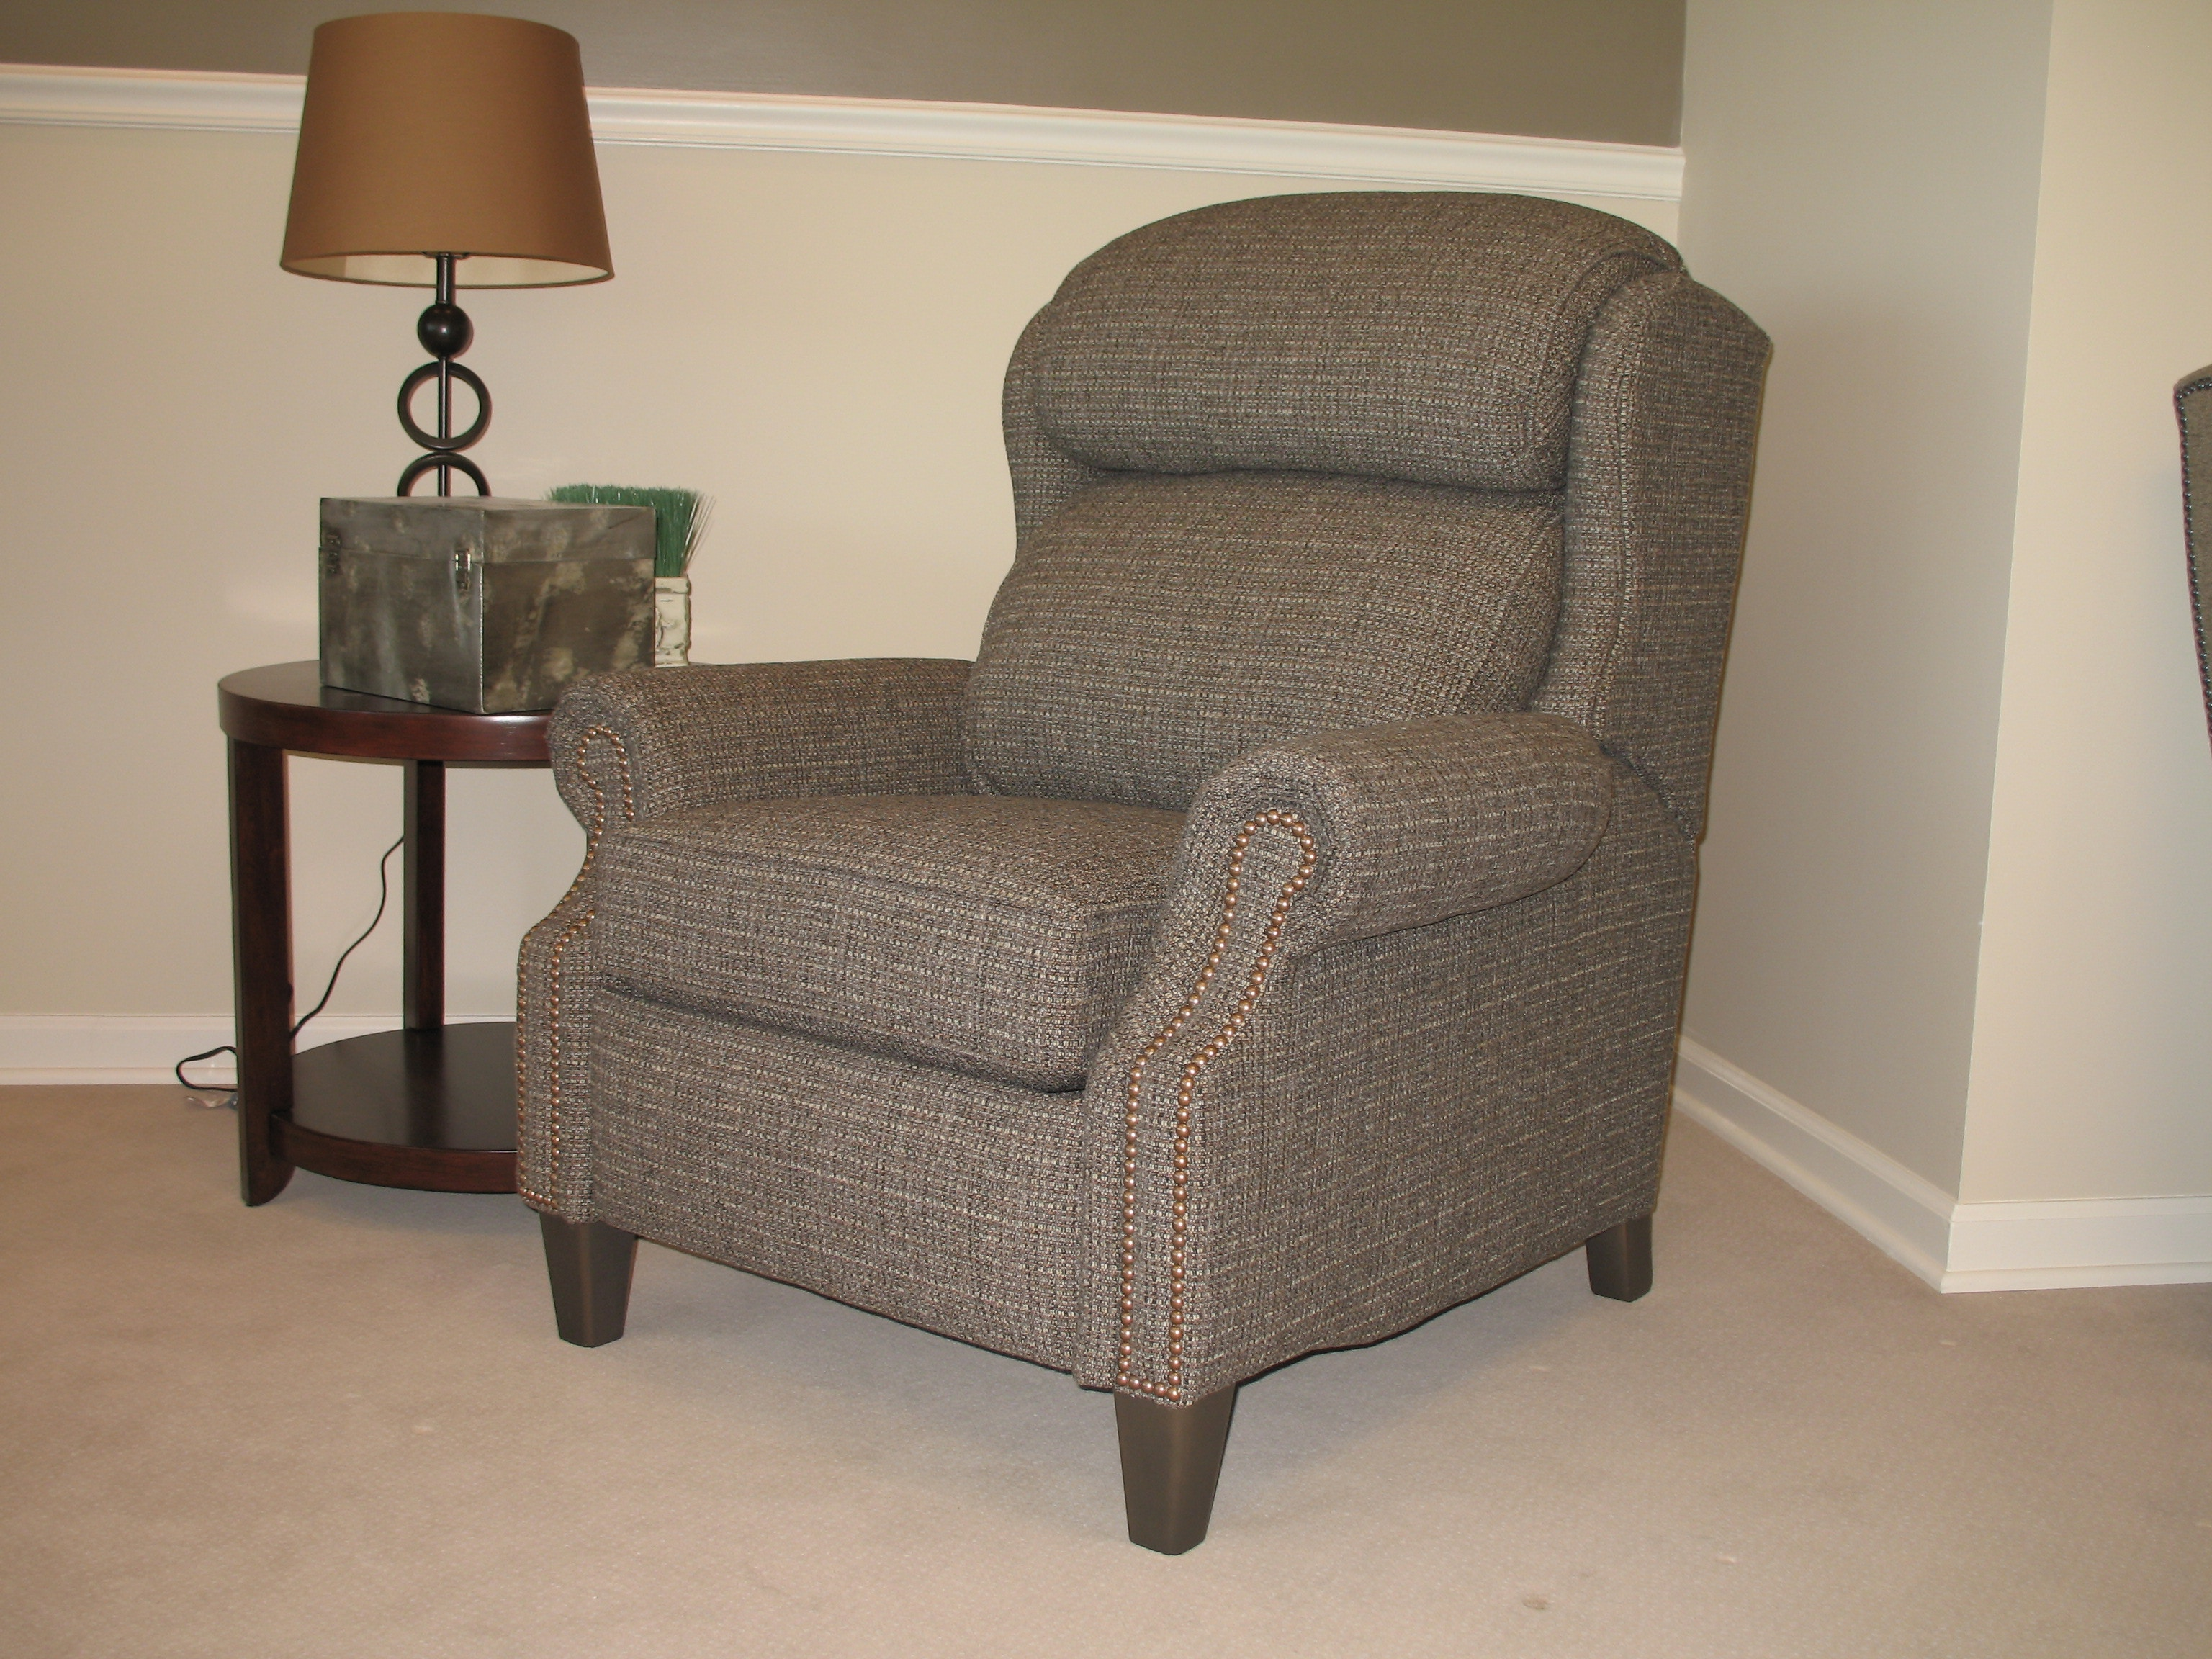 Smith brothers big tall motorized reclining chair 532 77